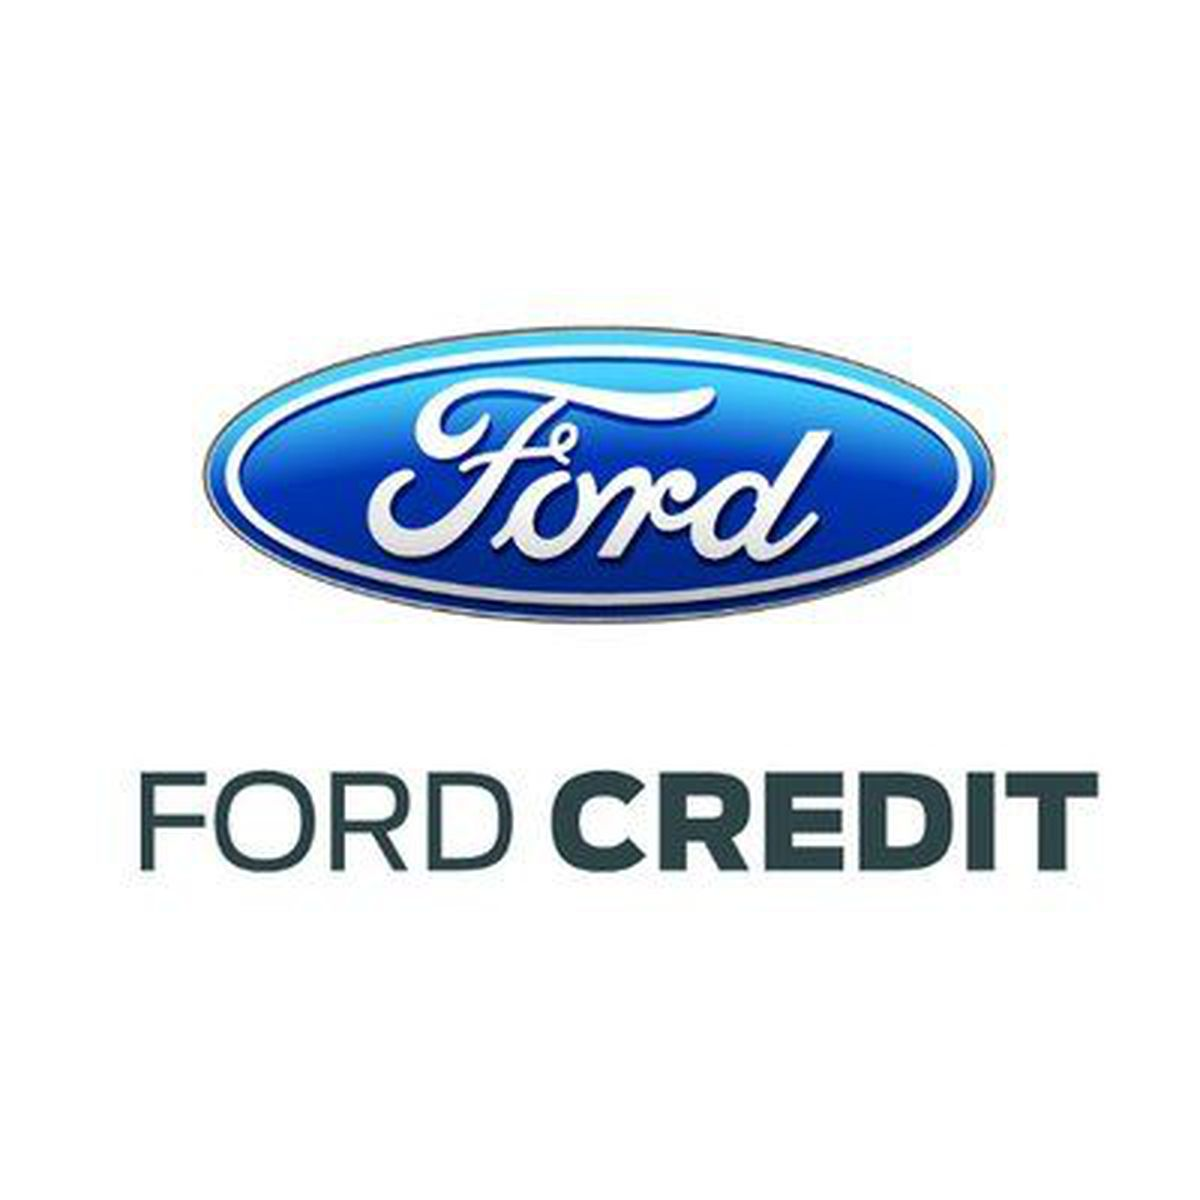 Ford reagor dykes auto group created their own financial mess